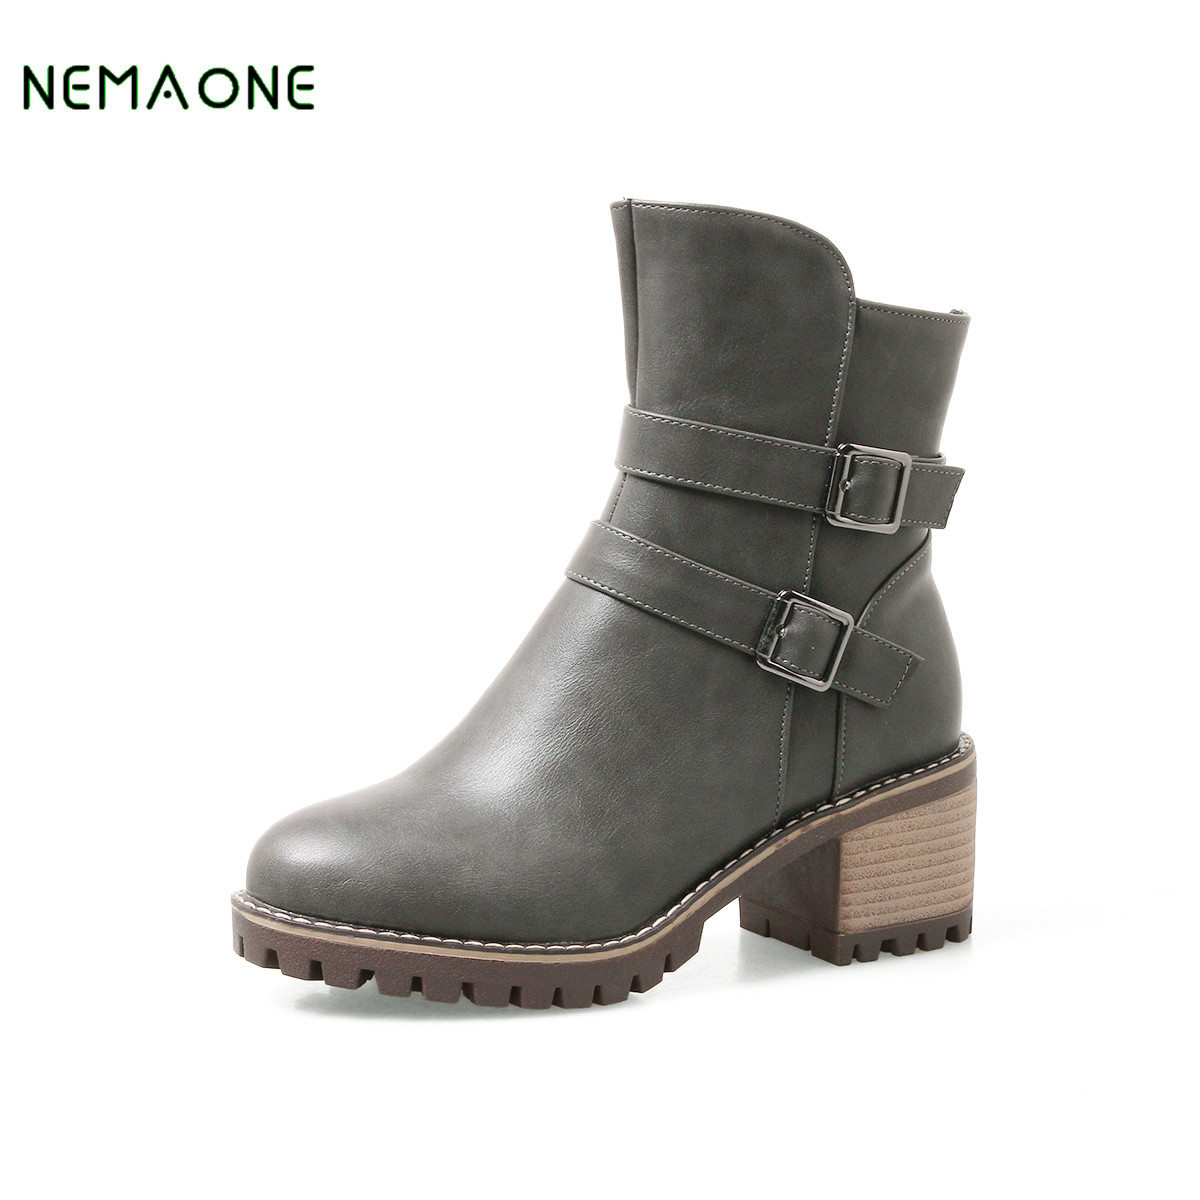 NEMAONE 2017 Women Boots High Heels Square Toe Ankle Boots Ladies Party Western Style Wedding Shoes Woman Winter Botas Mujer женские часы bering ber 10126 402